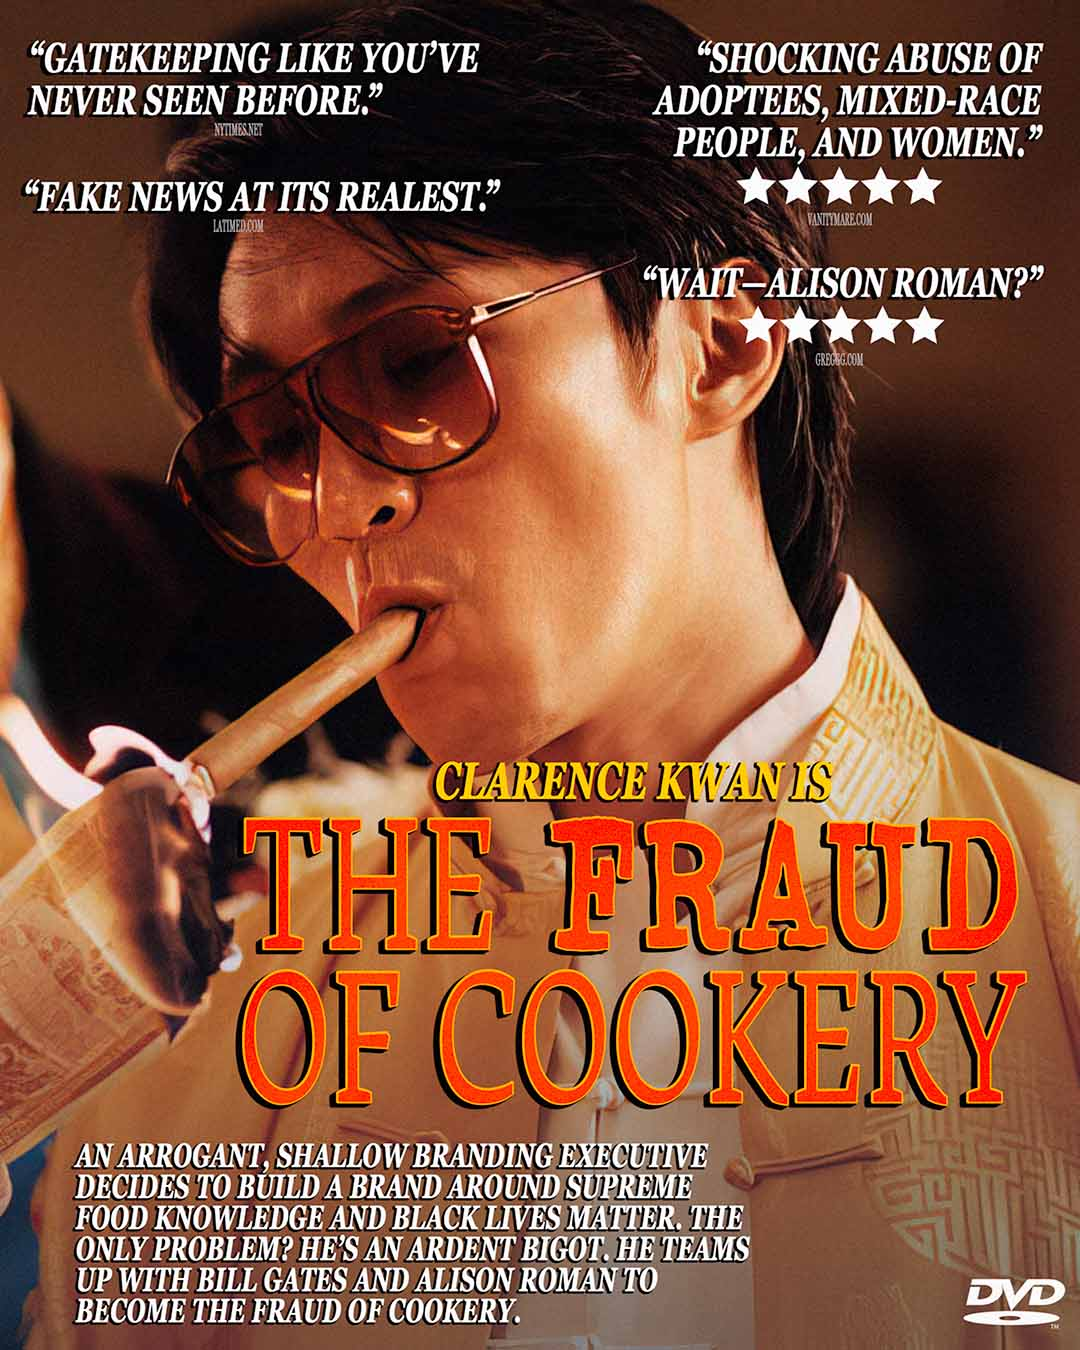 Mock DVD cover for The Fraud of Cookery, based on The God of Cookery, the film from which Clarence Kwan's Instagram profile picture was obtained. Originally presented as an Instagram post.